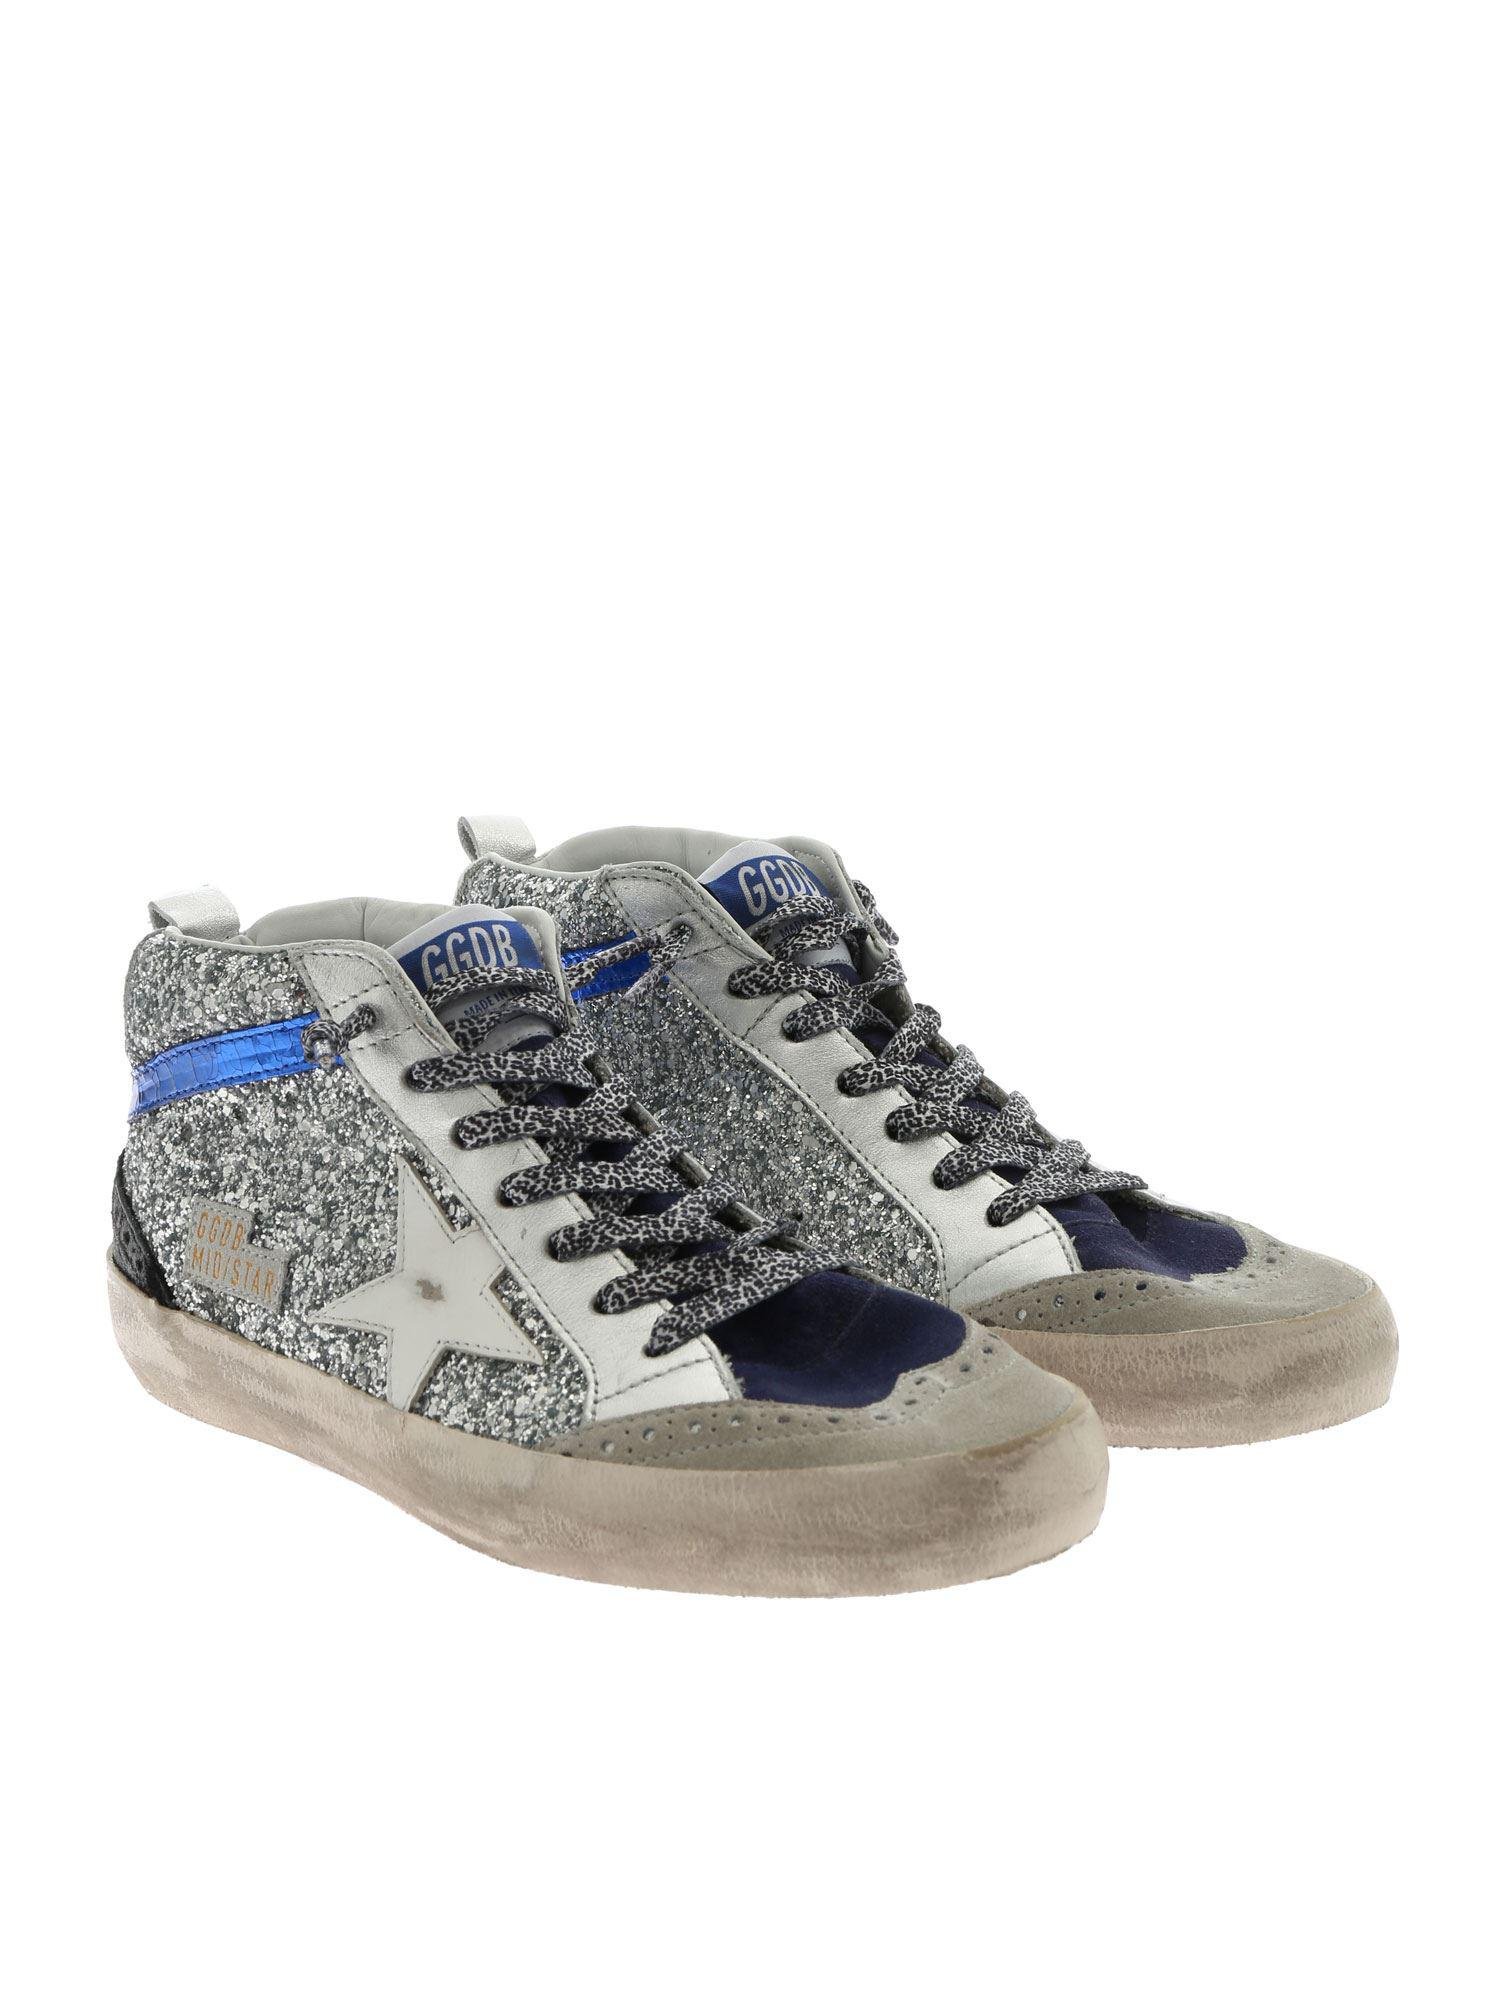 2e2a39a8f849 Golden Goose Deluxe Brand Metallic Mid Star Glitter Embellished Hi-top  Leather Sneakers in Metallic - Save 1% - Lyst